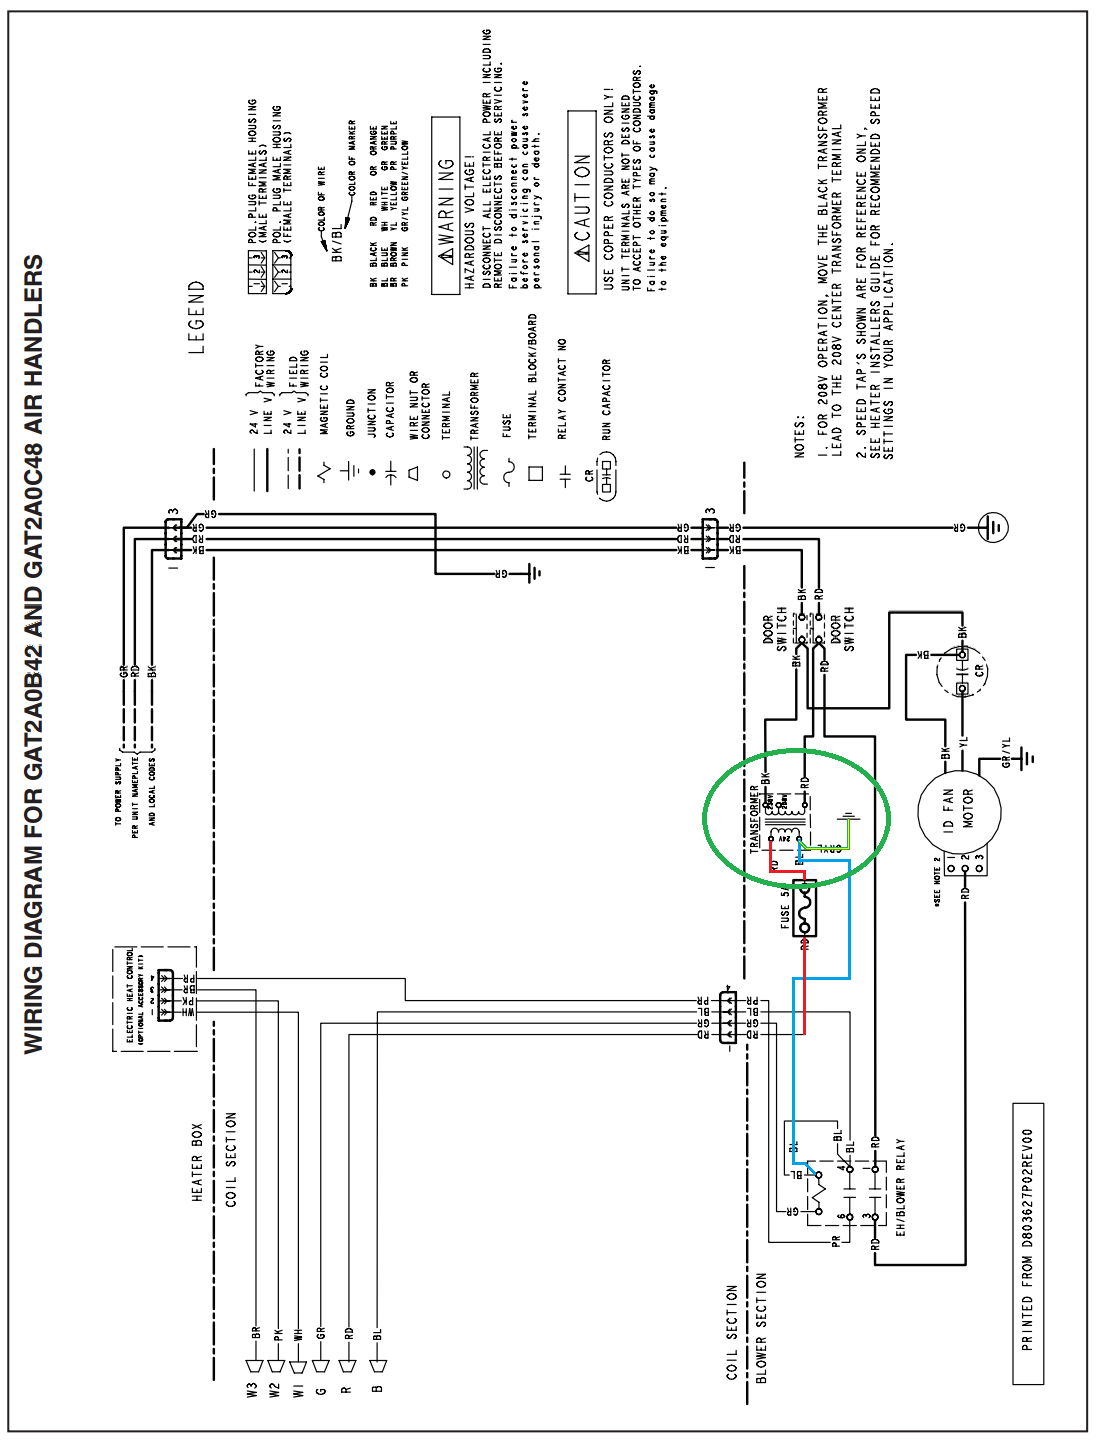 DIAGRAM] York Low Voltage Wiring Diagrams FULL Version HD Quality Wiring  Diagrams - FUSEBOXDIAGRAMS.CLUB-RONSARD.FRFREE Diagram Database - Club Ronsard